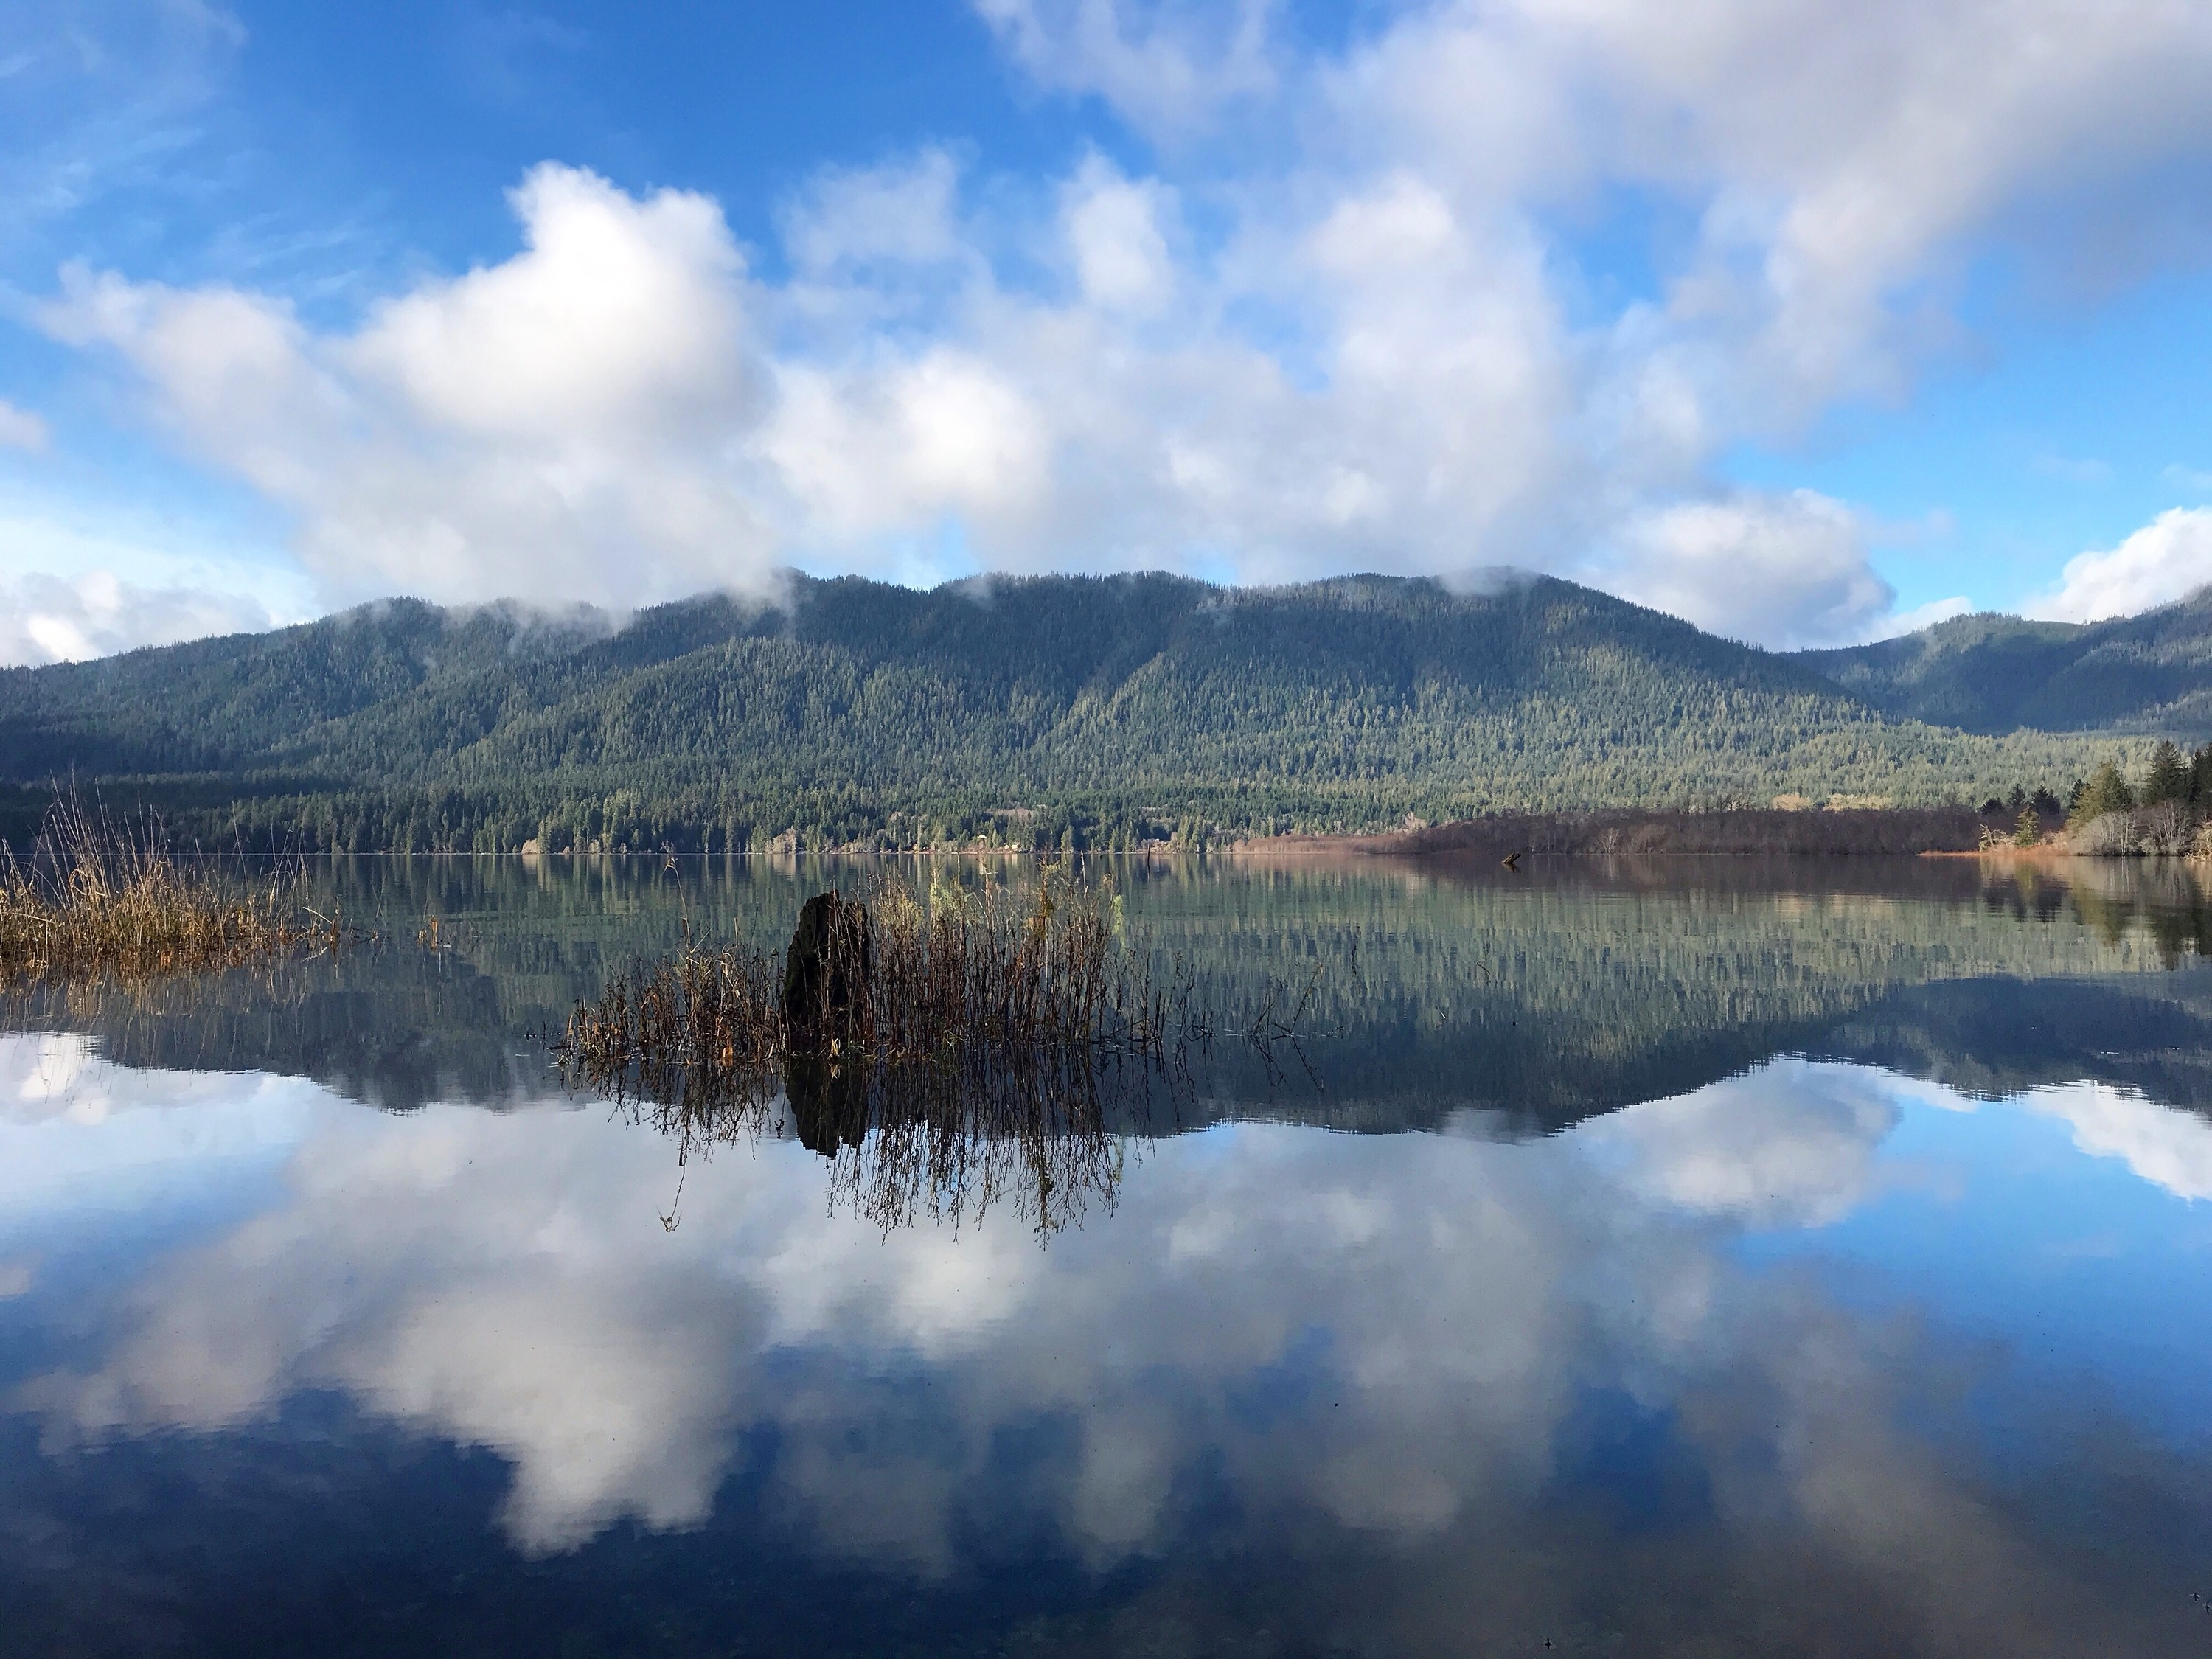 View ofLake Quinault with mountains in background